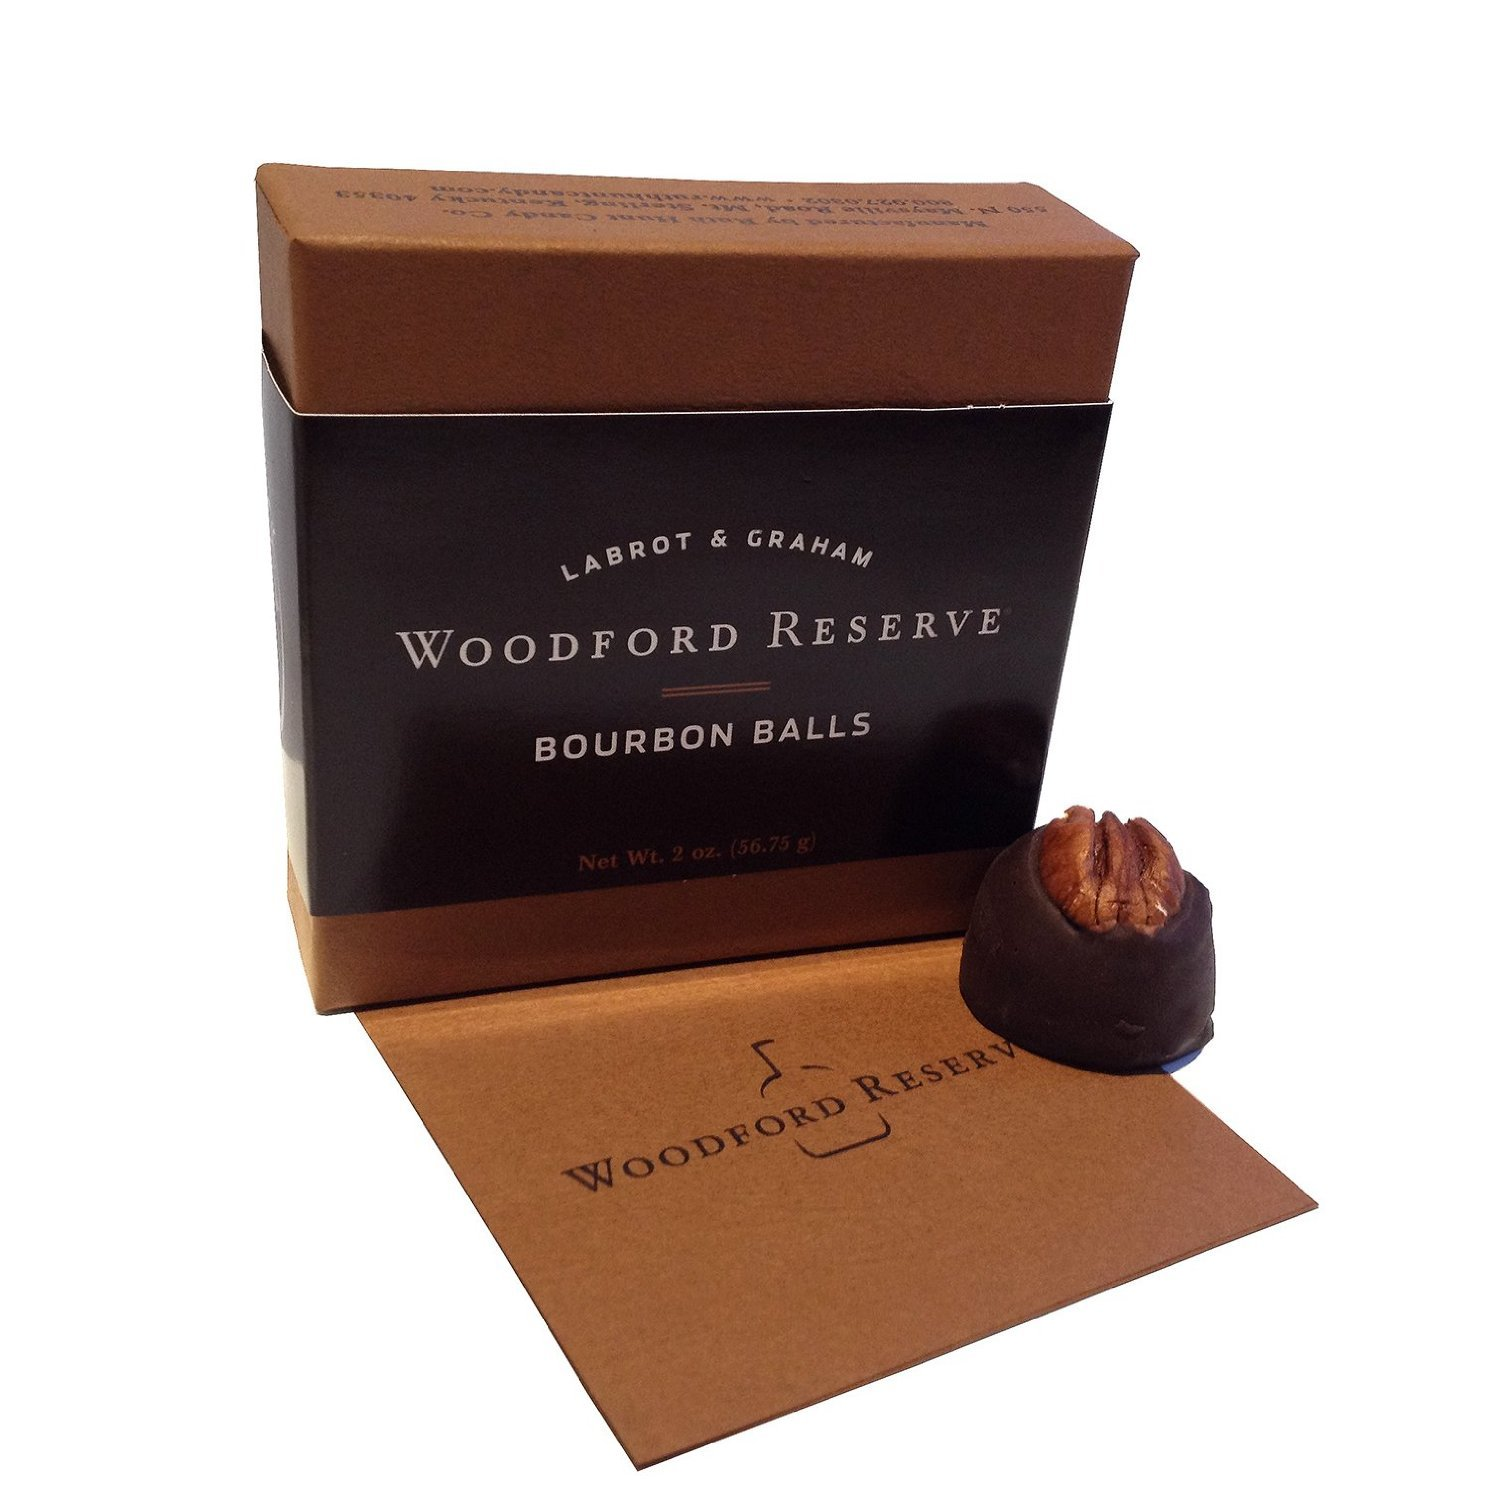 Derby Traditions Woodford Reserve Bourbon Balls - 4 Piece Box